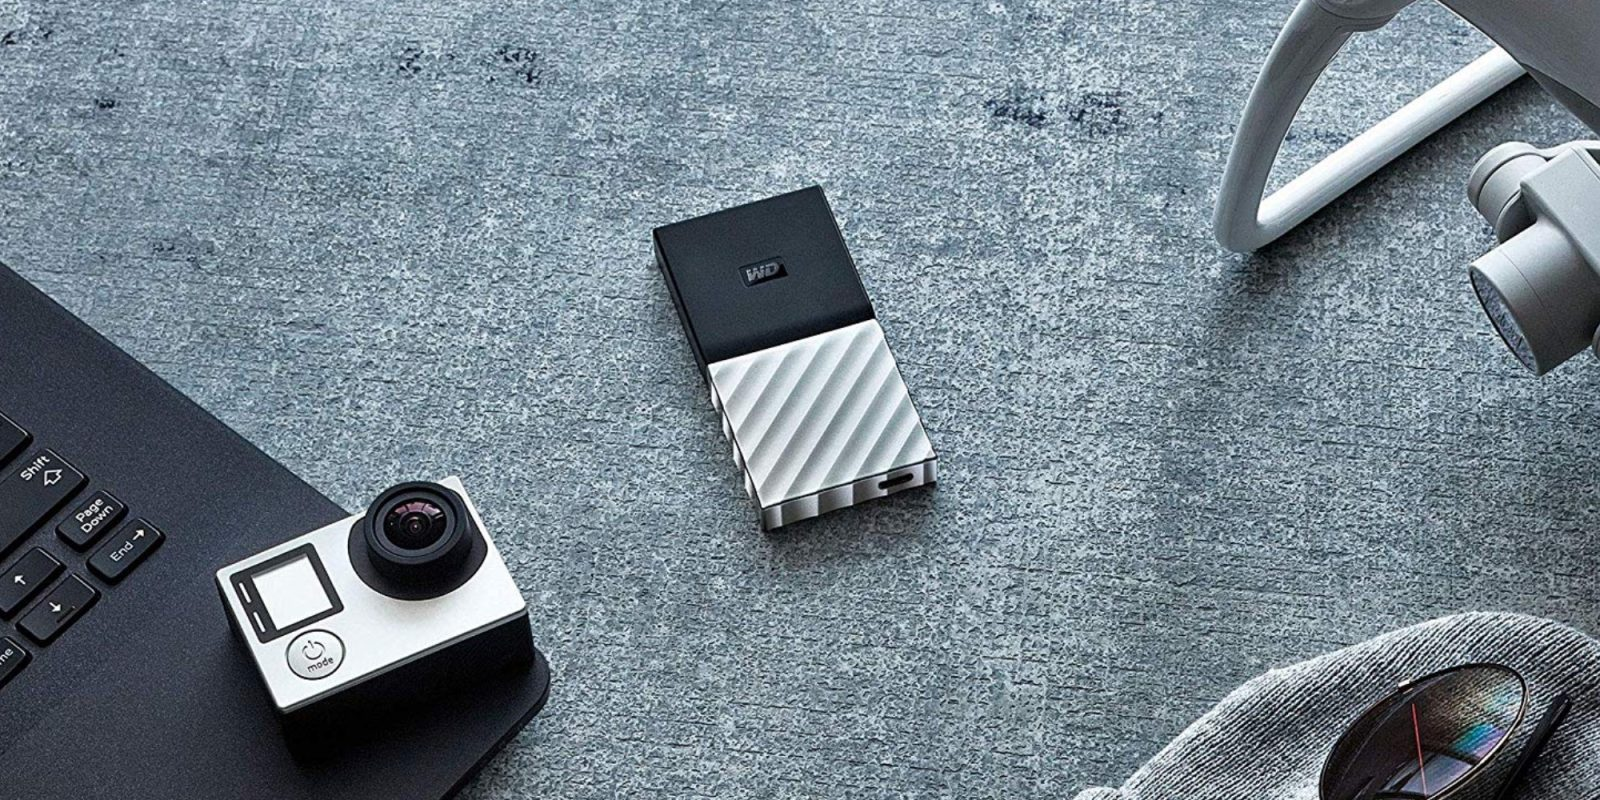 WD's 1TB My Passport Portable USB-C SSD pairs with your Mac